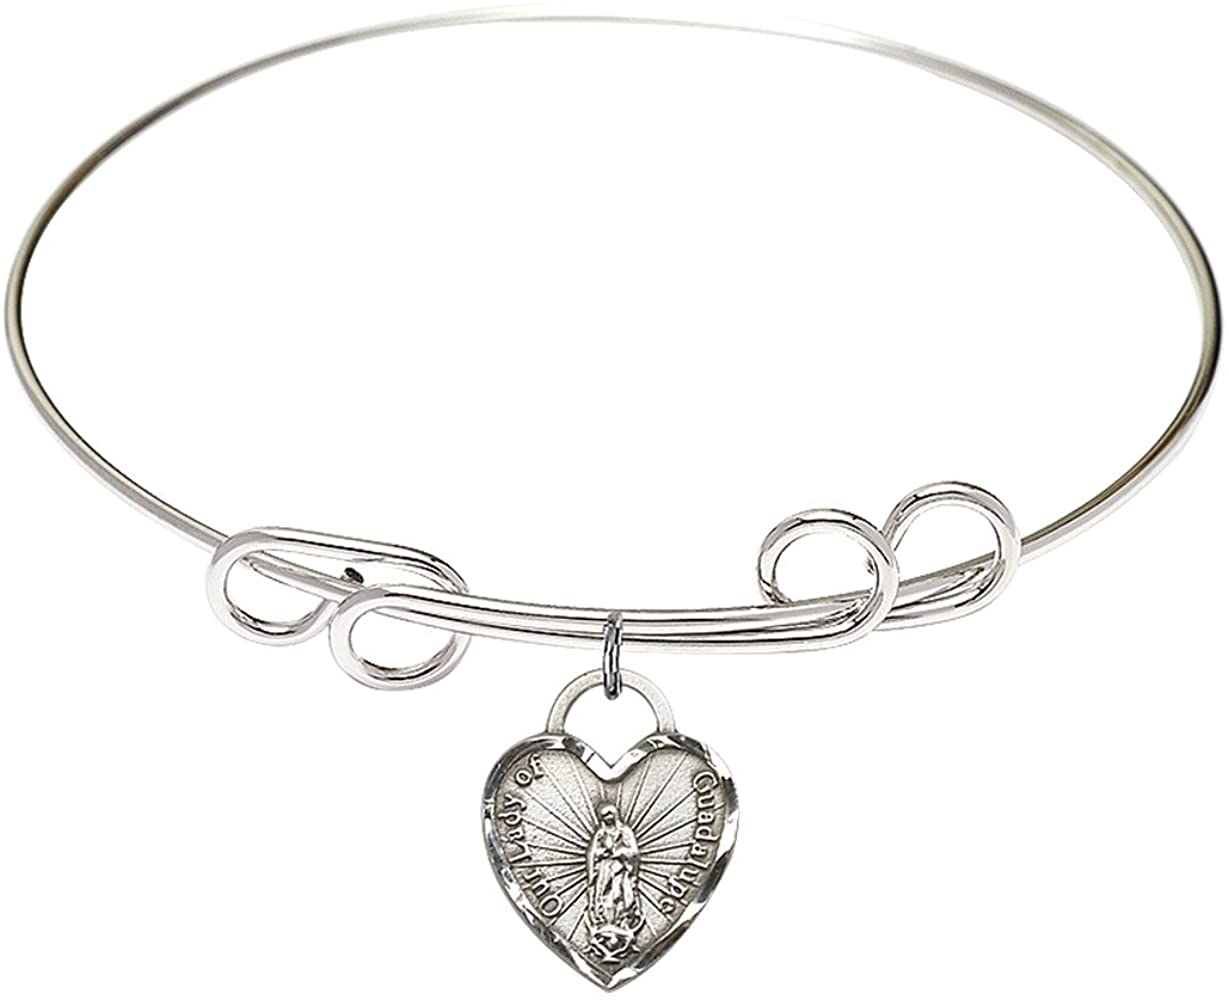 Bonyak Jewelry Round Double Loop Bangle Bracelet w/Our Lady of Guadalupe Heart in Sterling Silver